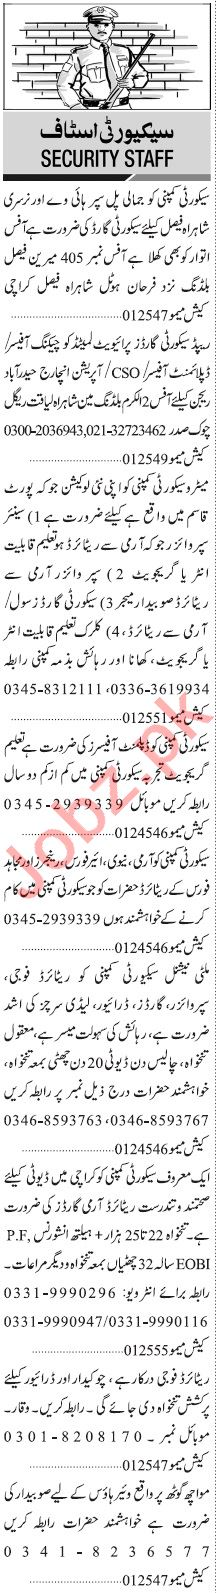 Jang Sunday Classified Ads 20 Sept 2020 for Security Staff